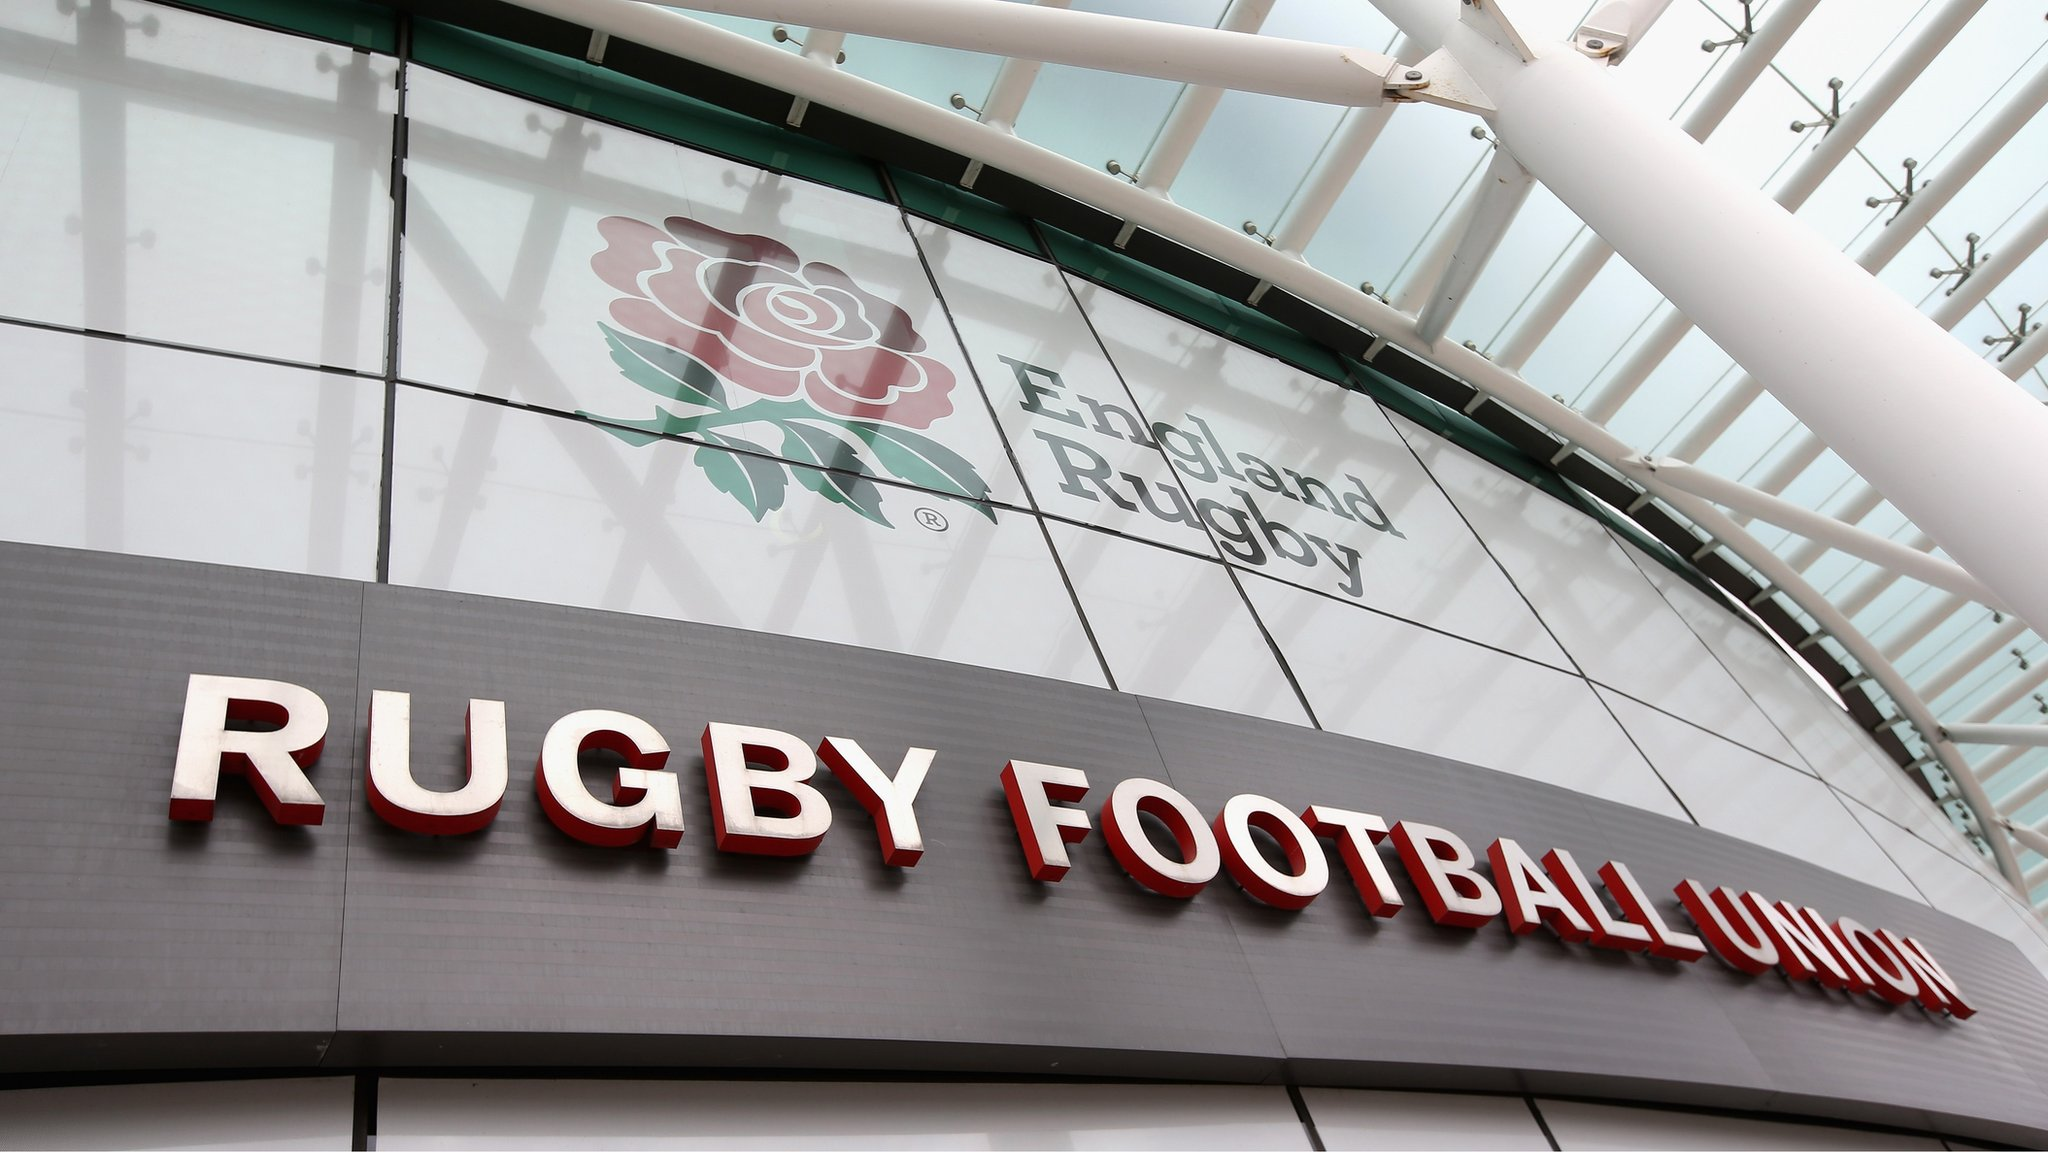 RFU says it is 'modern' in wake of sexism allegations within organisation